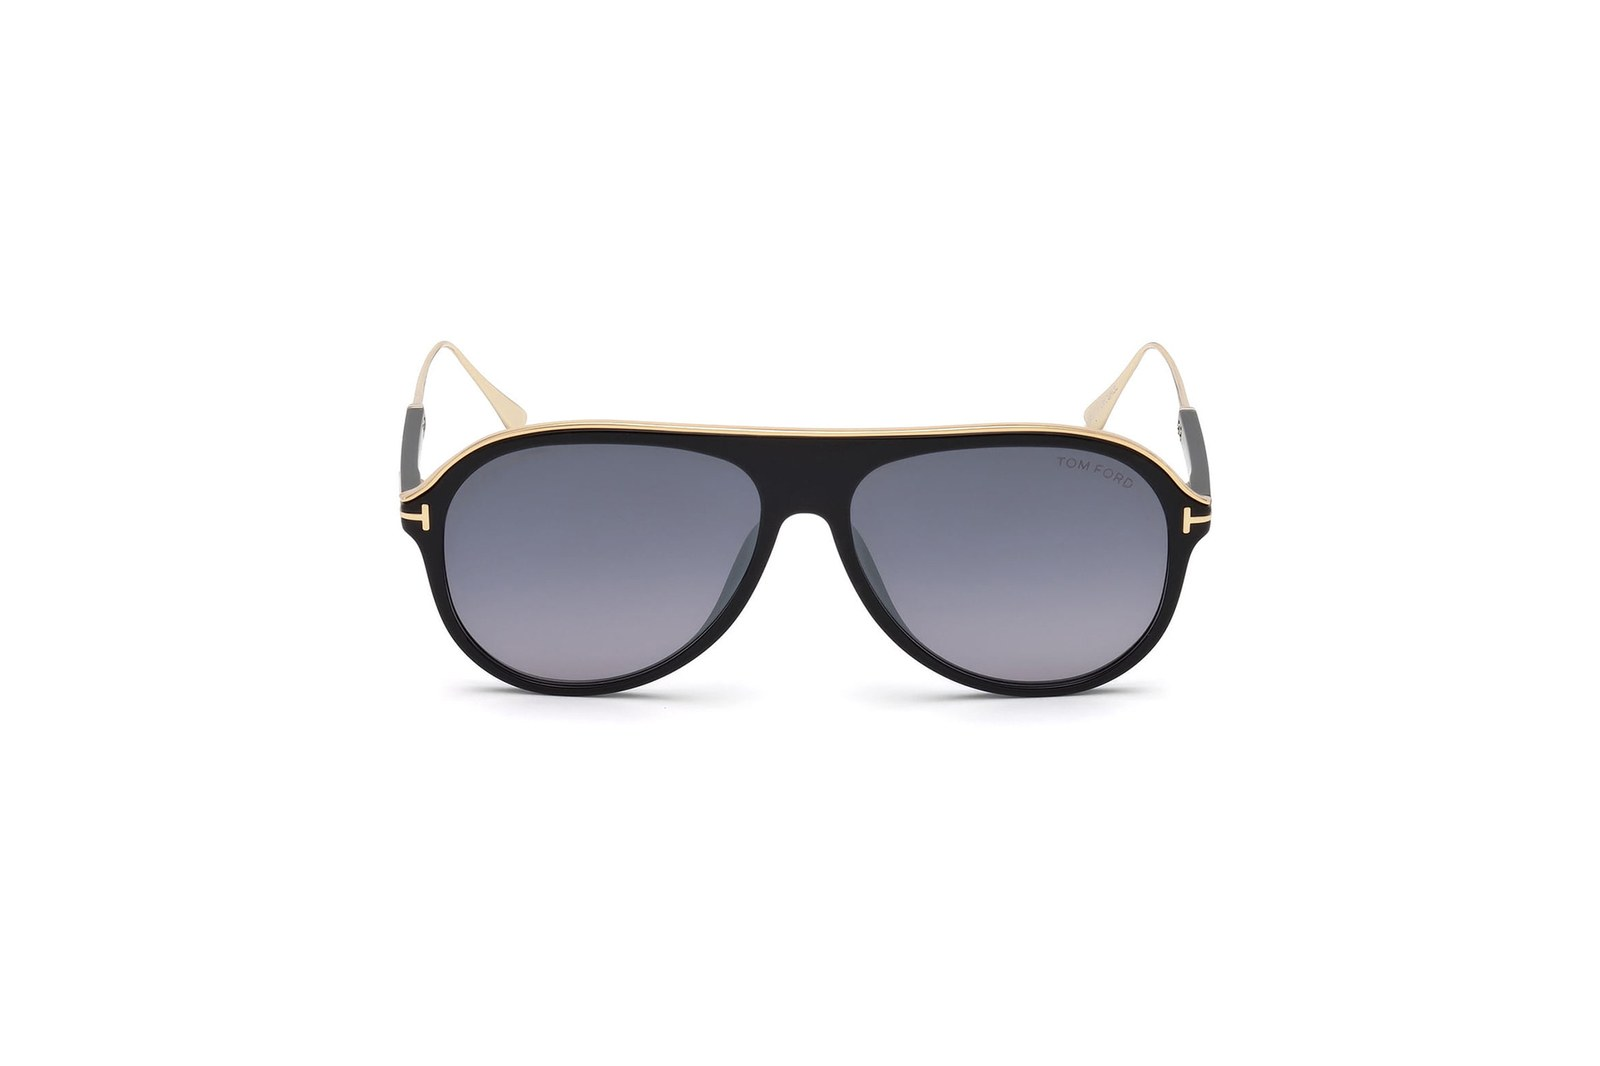 Kính Tom Ford Nicholai sunglasses